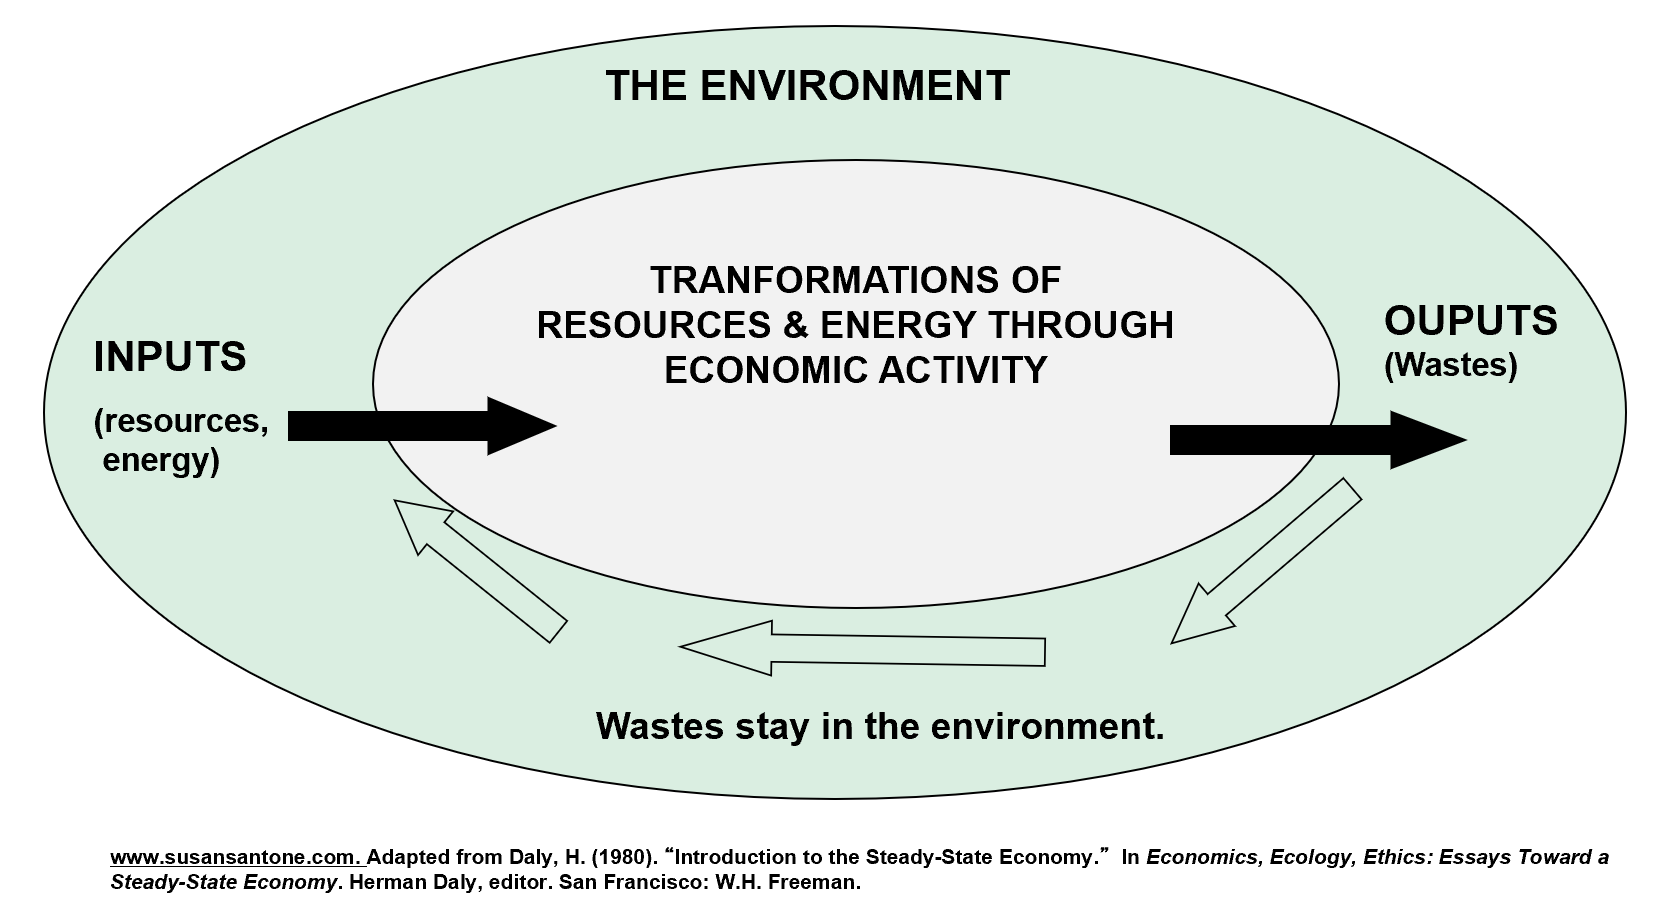 An accurate representation of the economy as a subsystem of the environment.